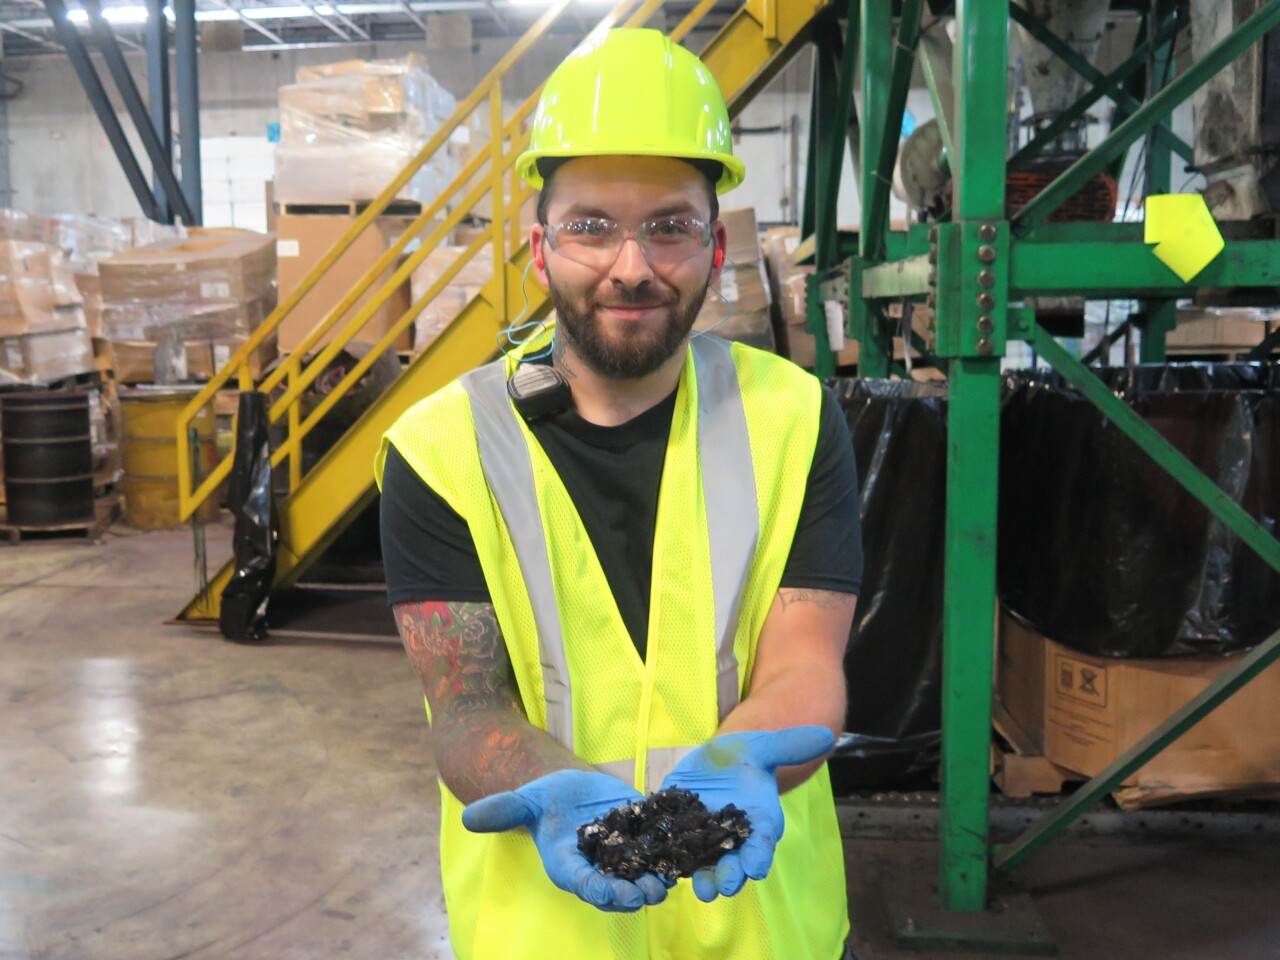 Adam Criss holds some of the toner cartridge material that Close the Loop's machines remove to be reused. The material is black and sooty looking.